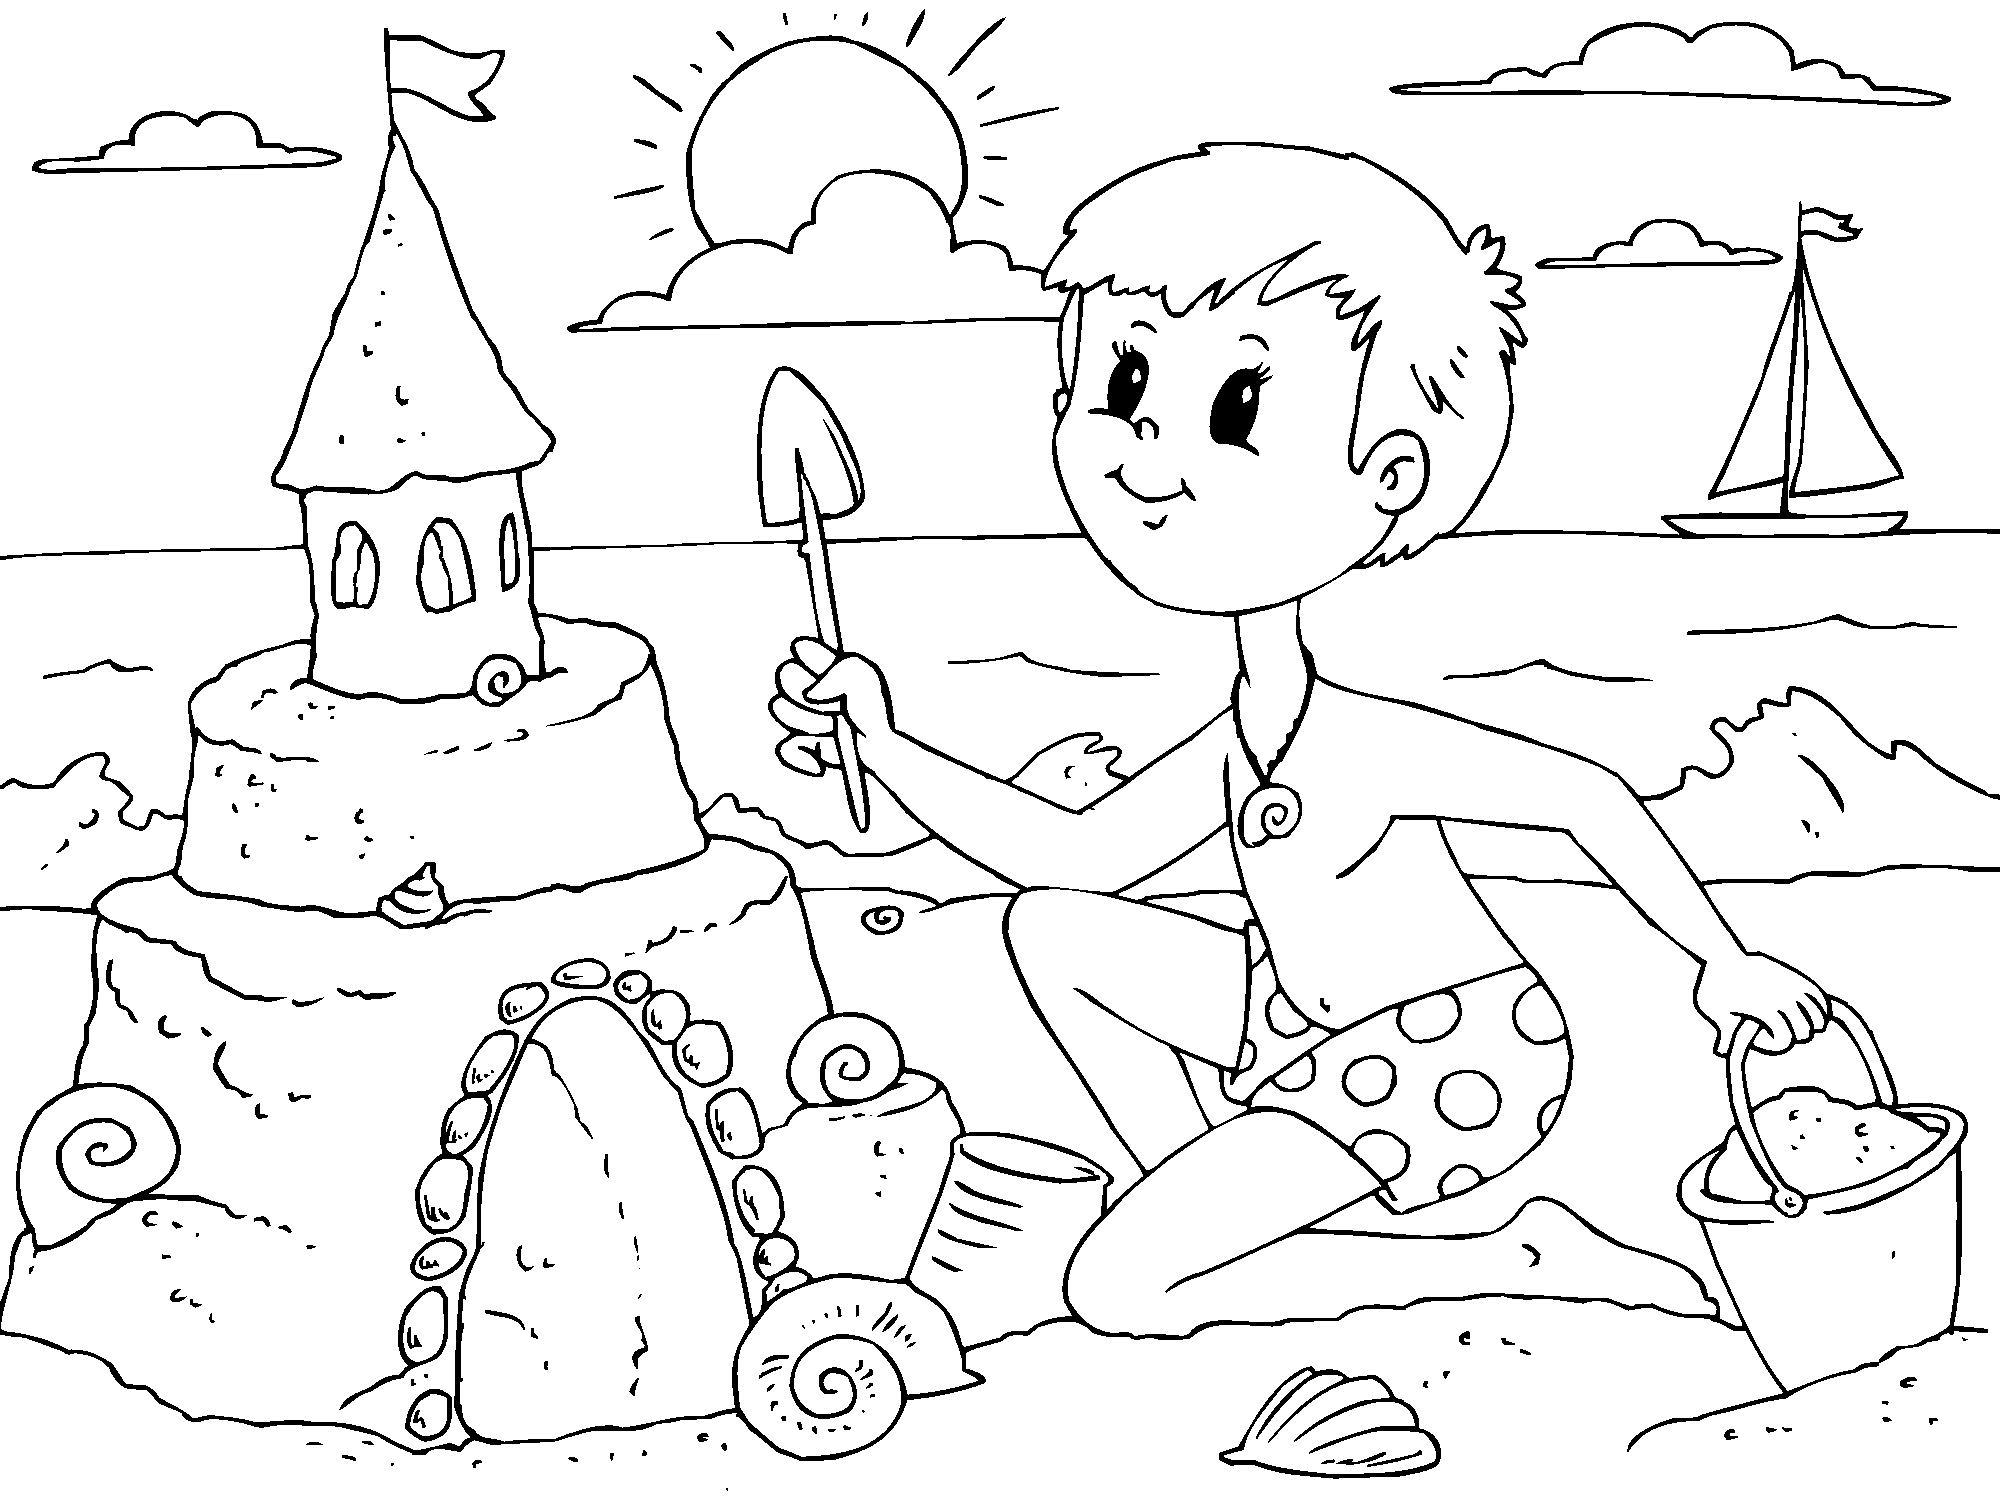 Summer online coloring for kids with online coloring tools ...